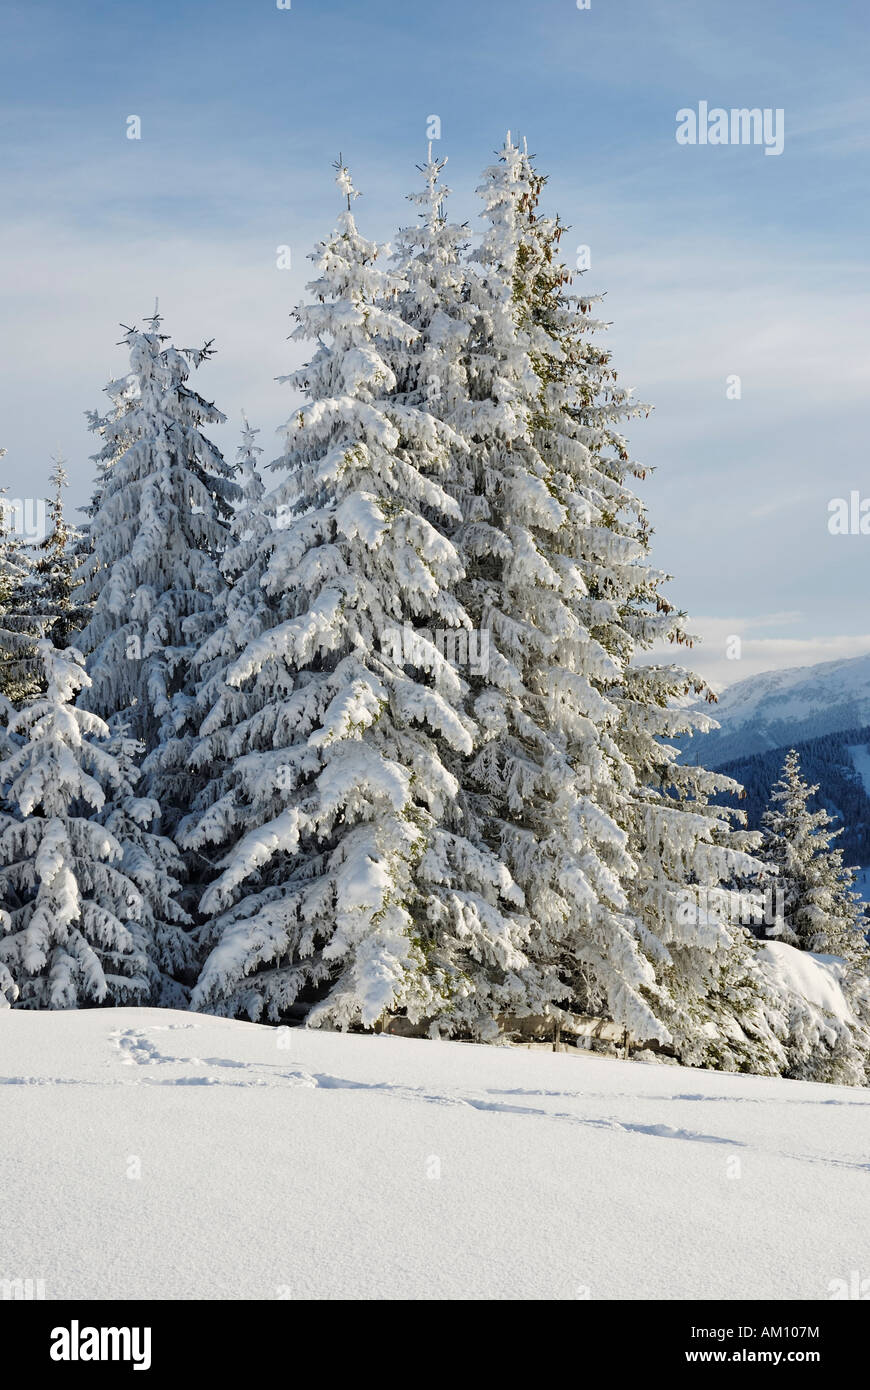 Snow covered spruced in the tyrolian alps, Austria - Stock Image